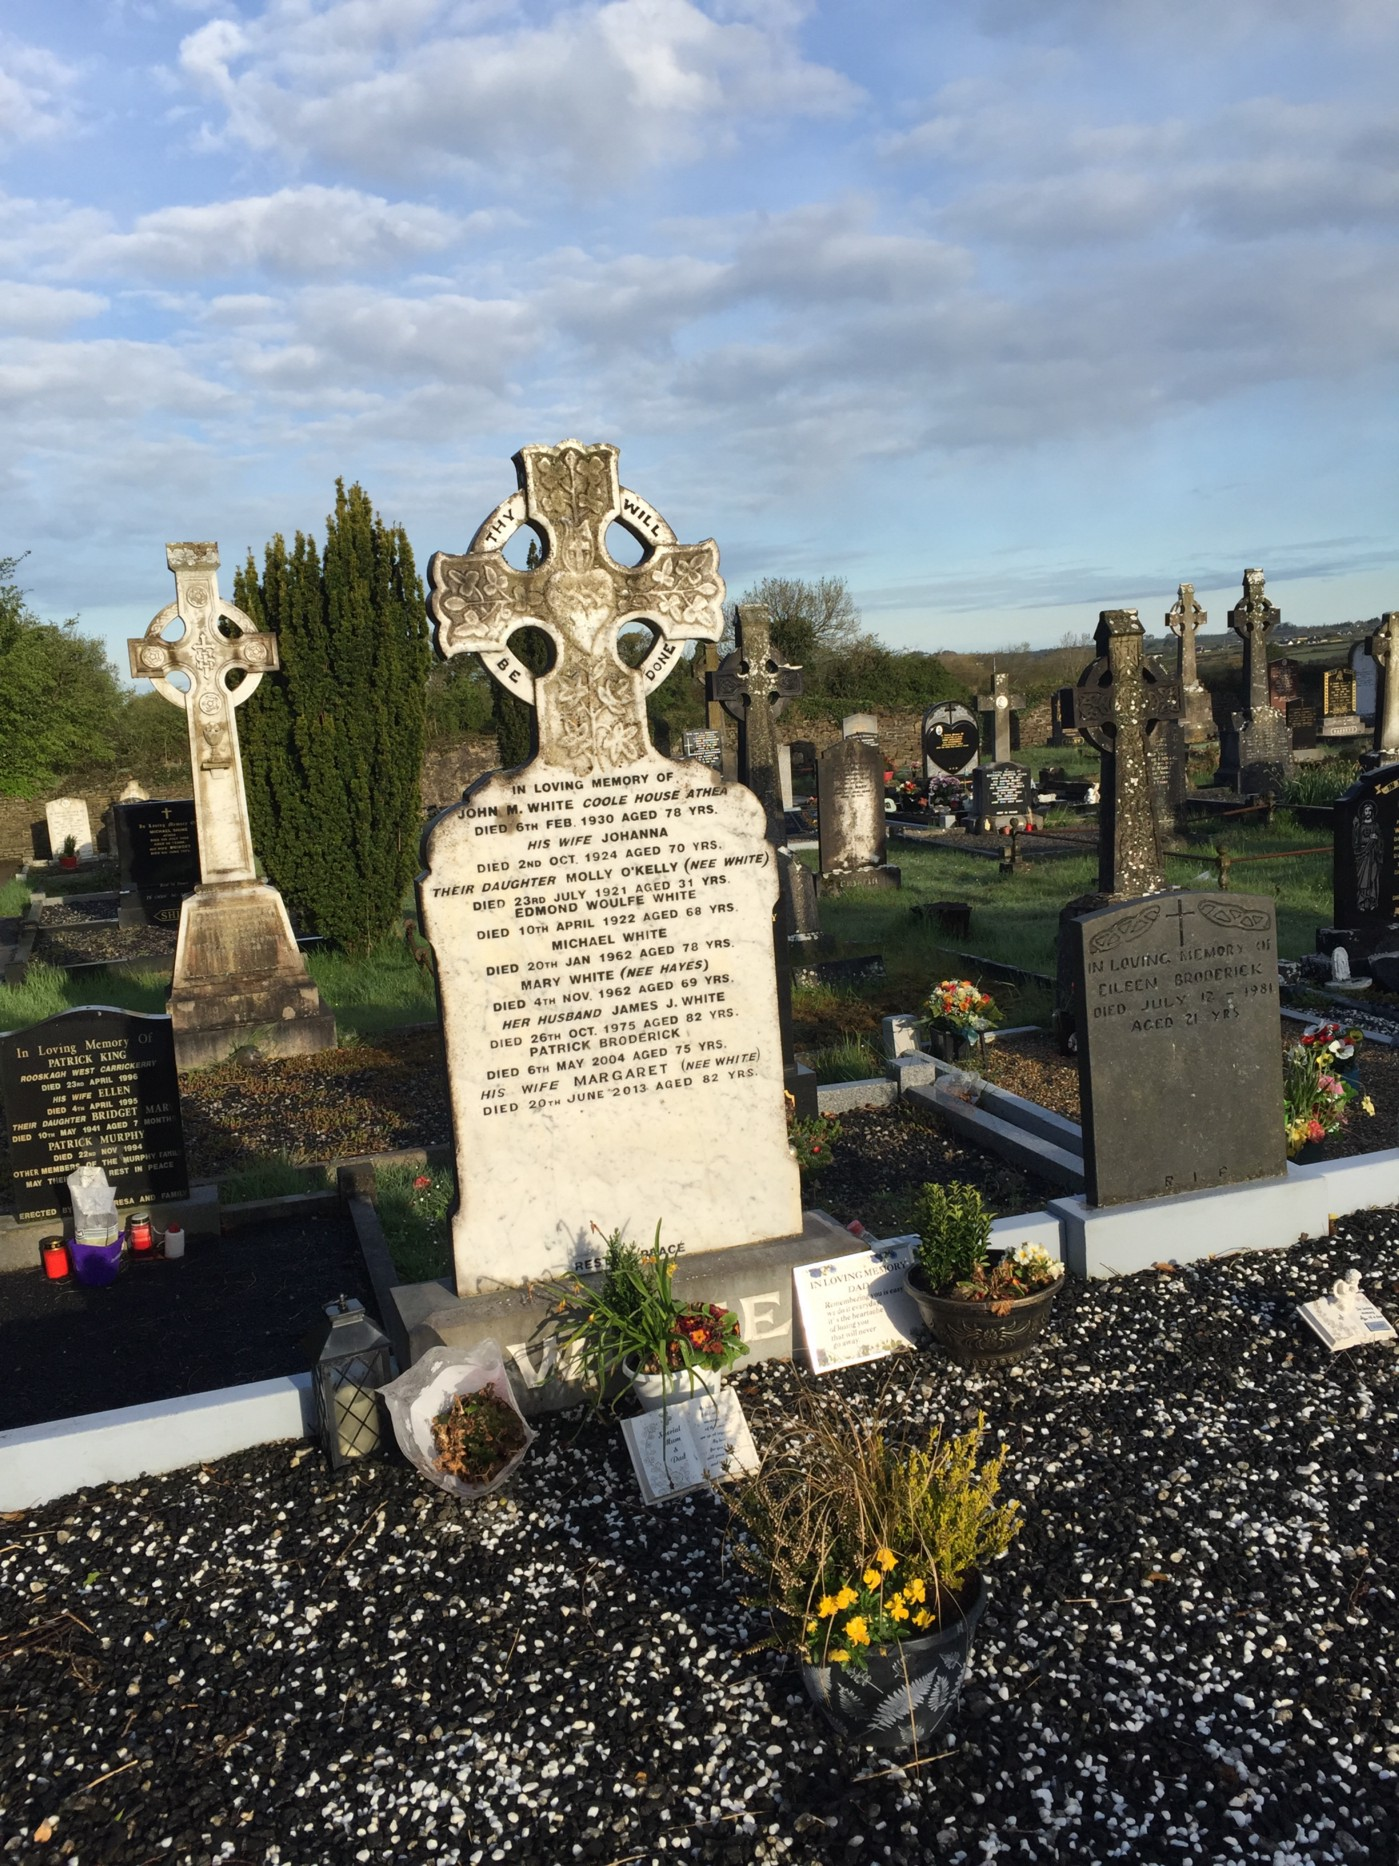 A color image of gravestones at Templeathea graveyard in Co. Limerick, taken in 2018.